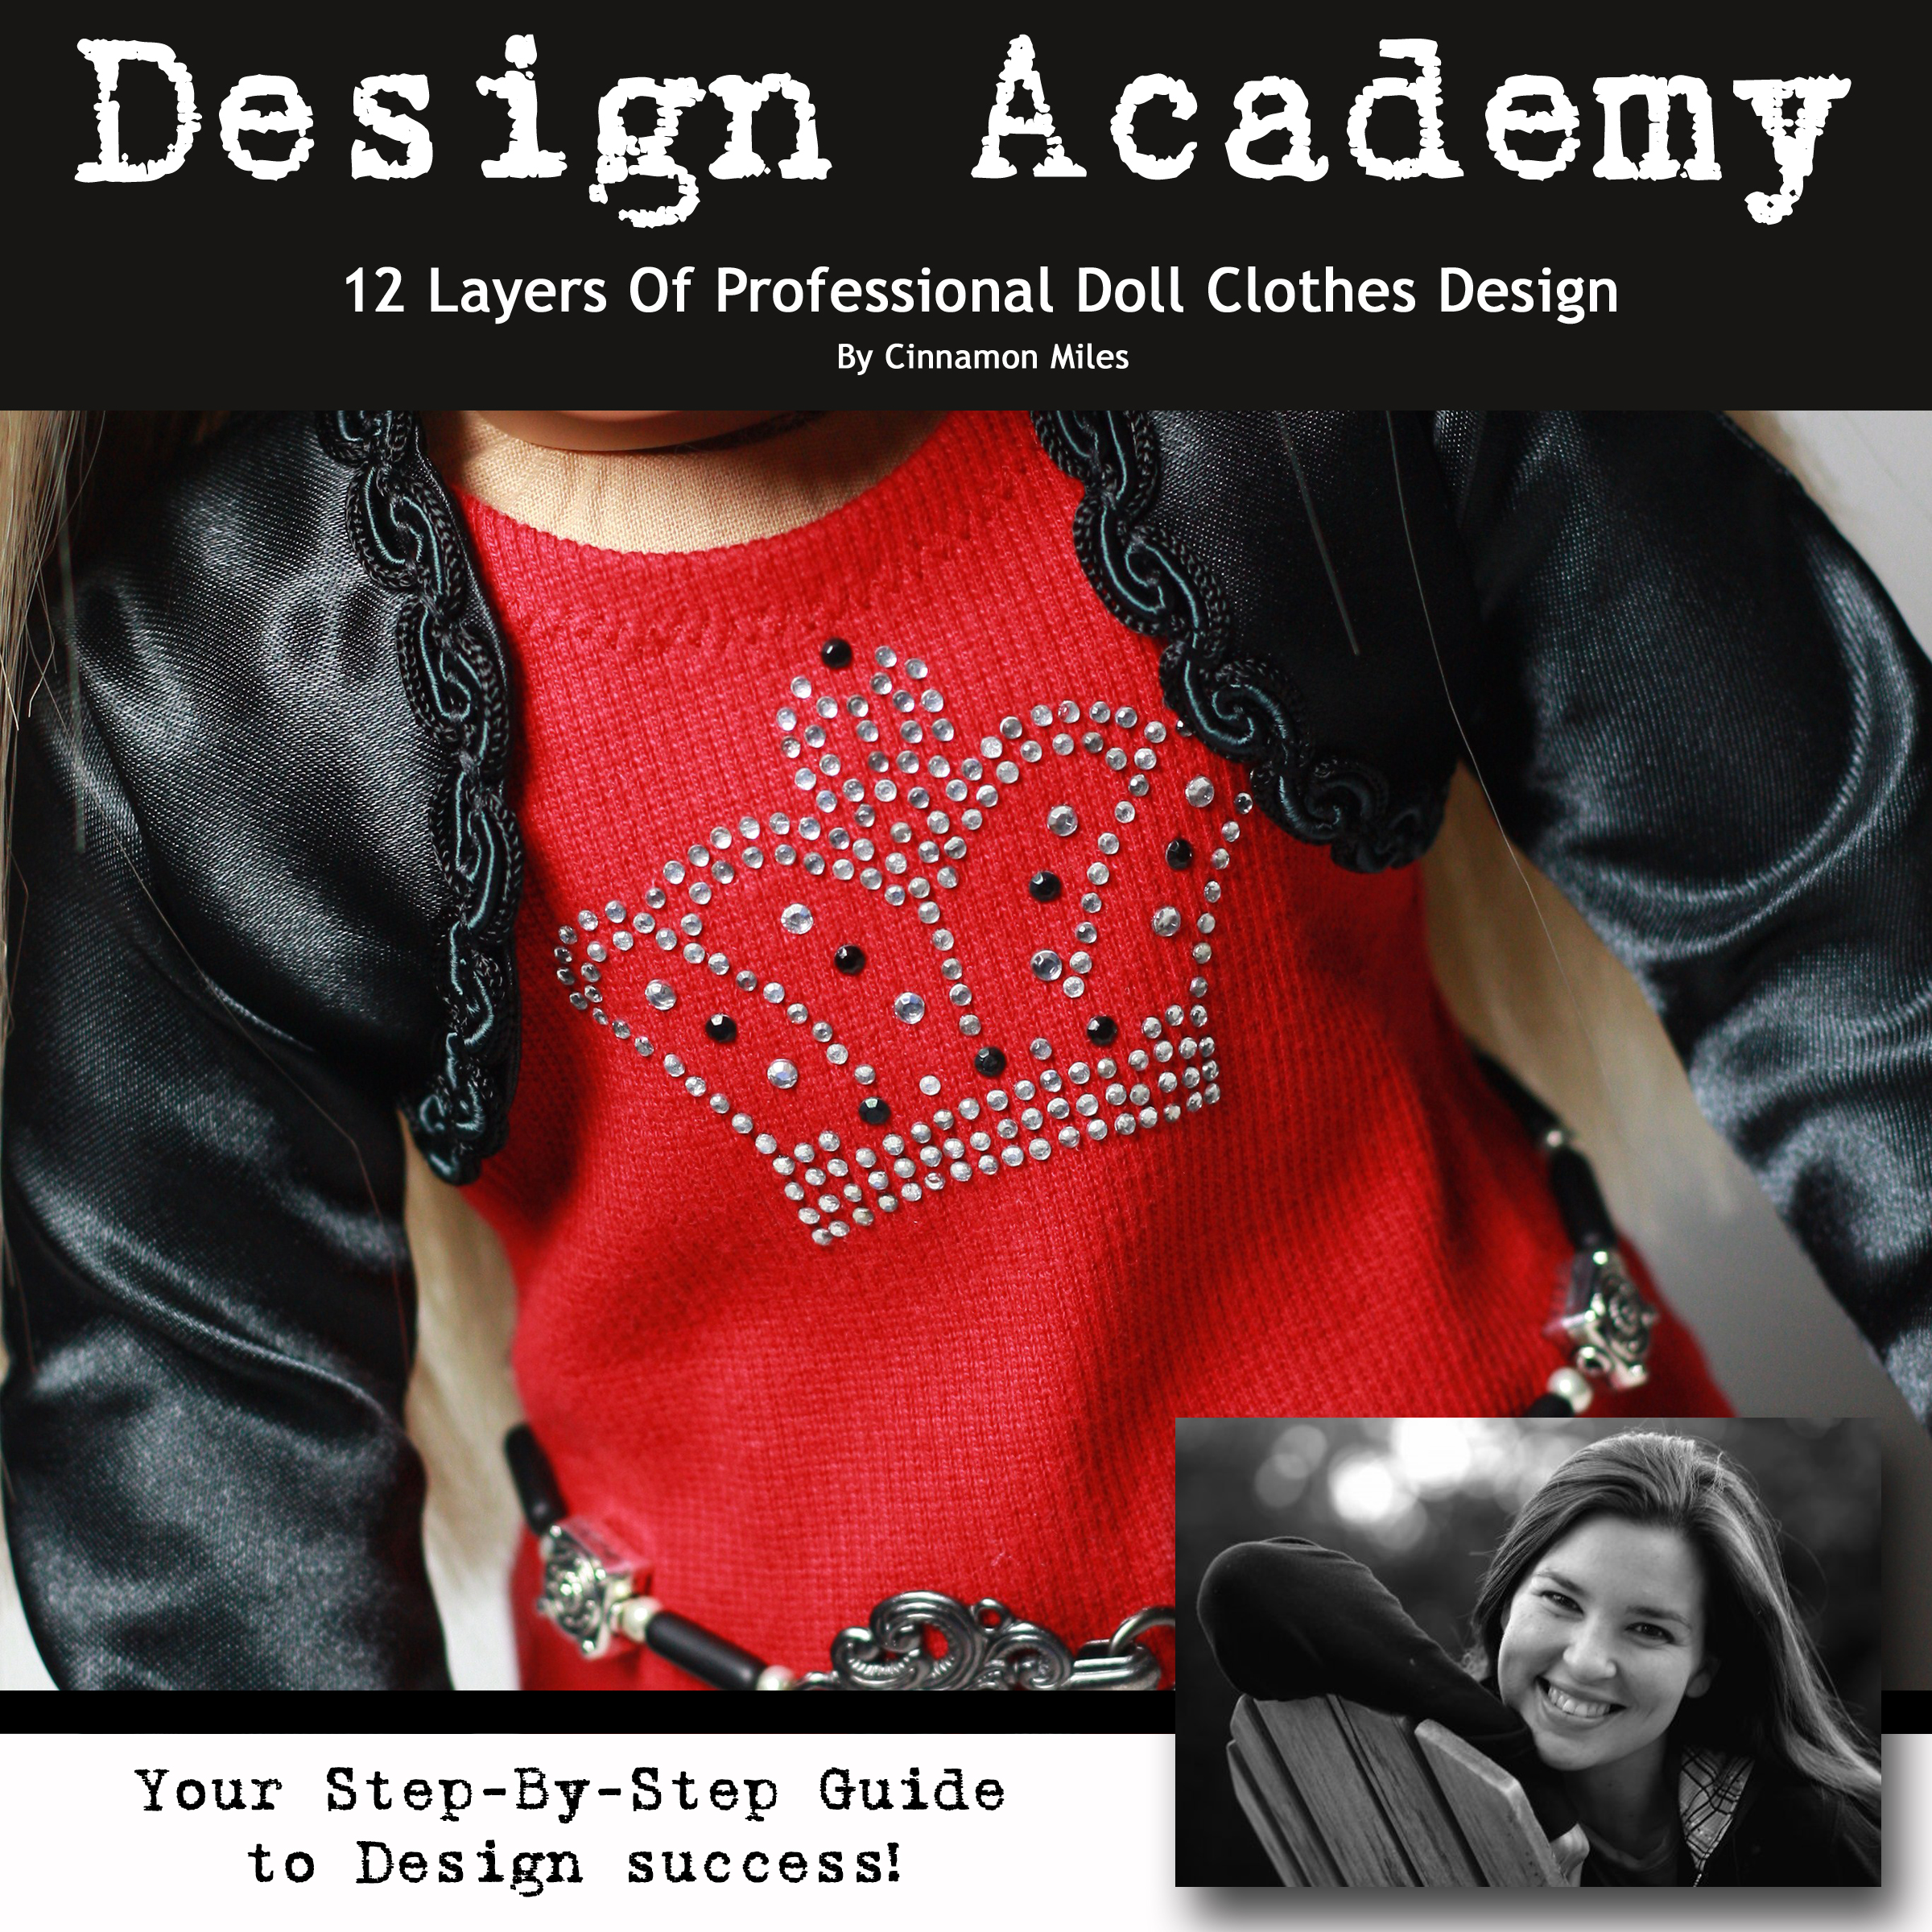 Design Academy Book